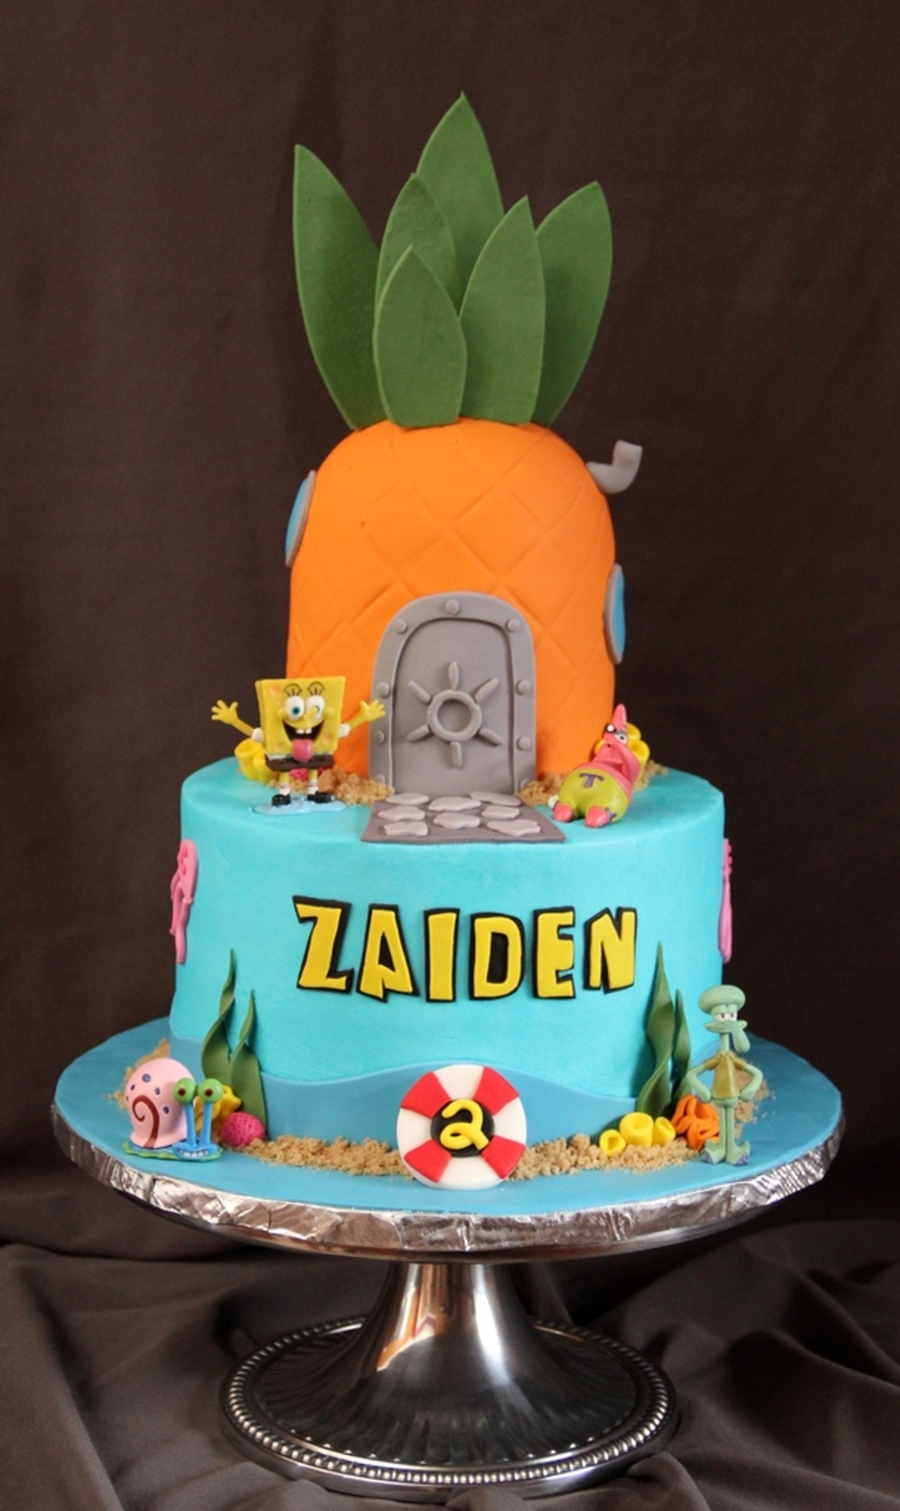 Zaiden's 2Nd on Cake Central